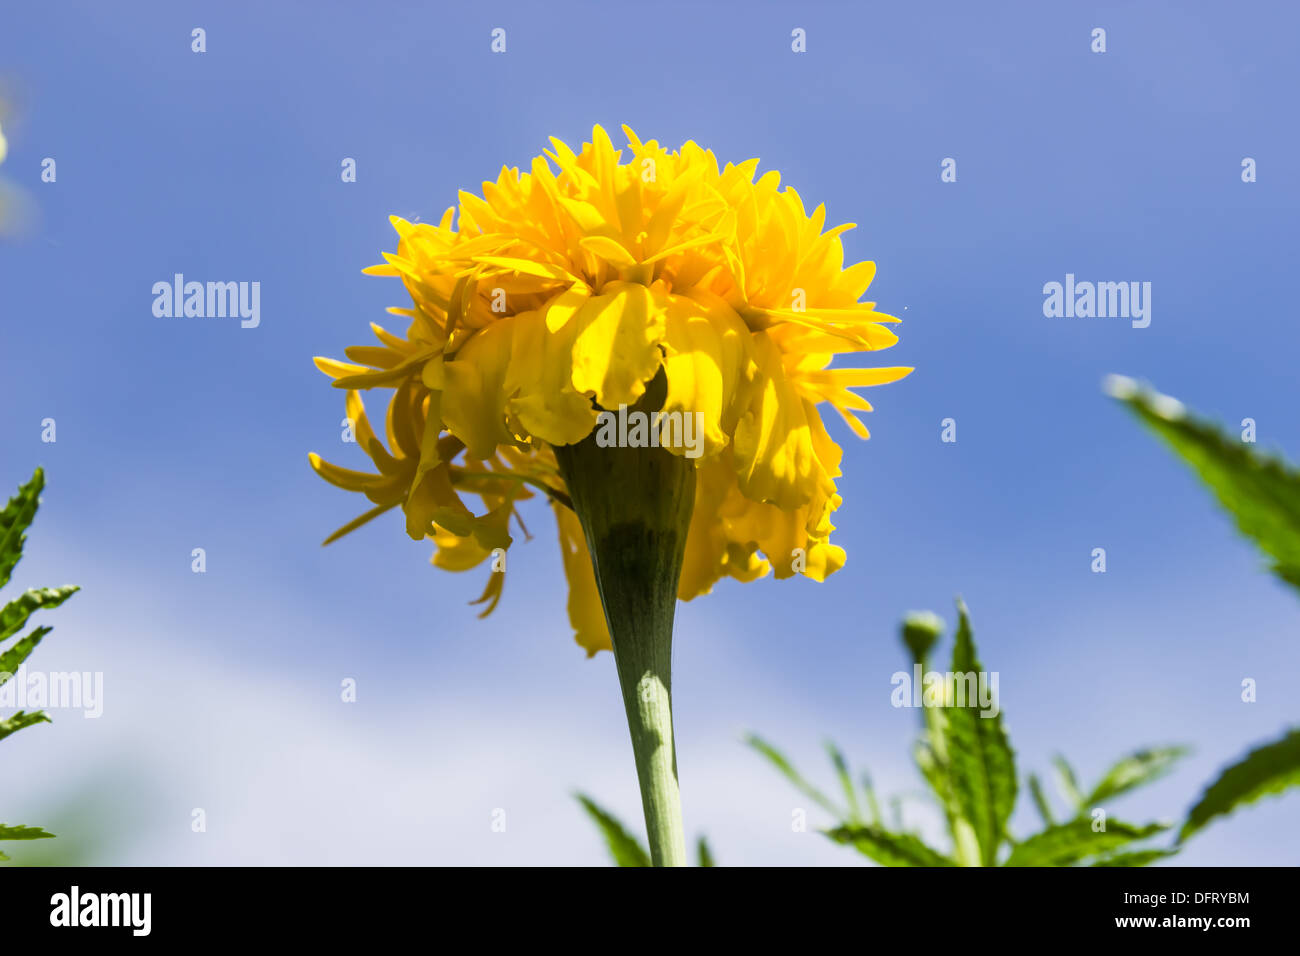 Marigolds Flowers And Blue Sky In Garden Thailand Stock Photo